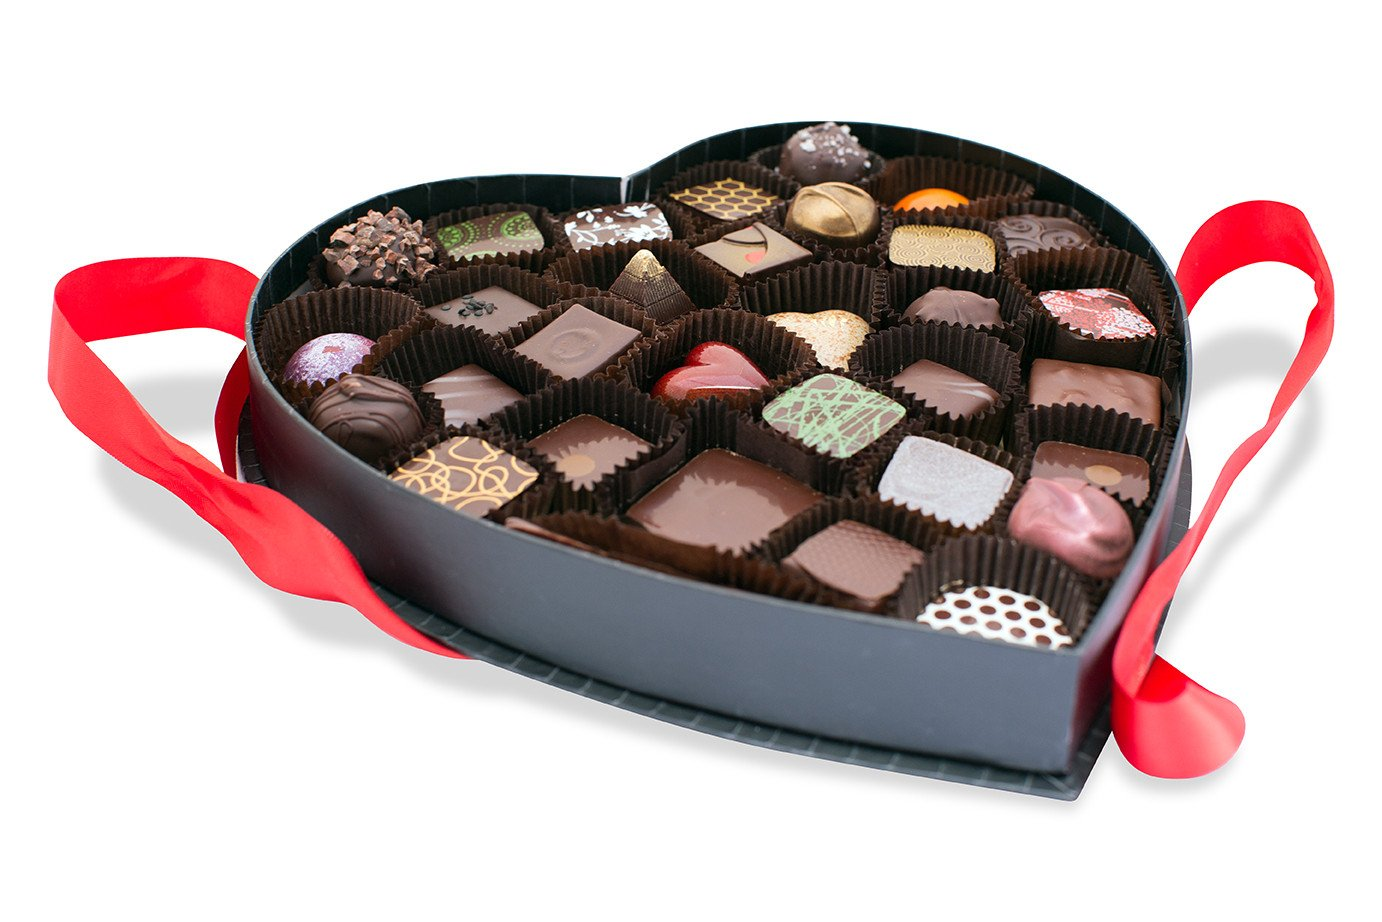 23-handmade-chocolates-heart-shaped-box